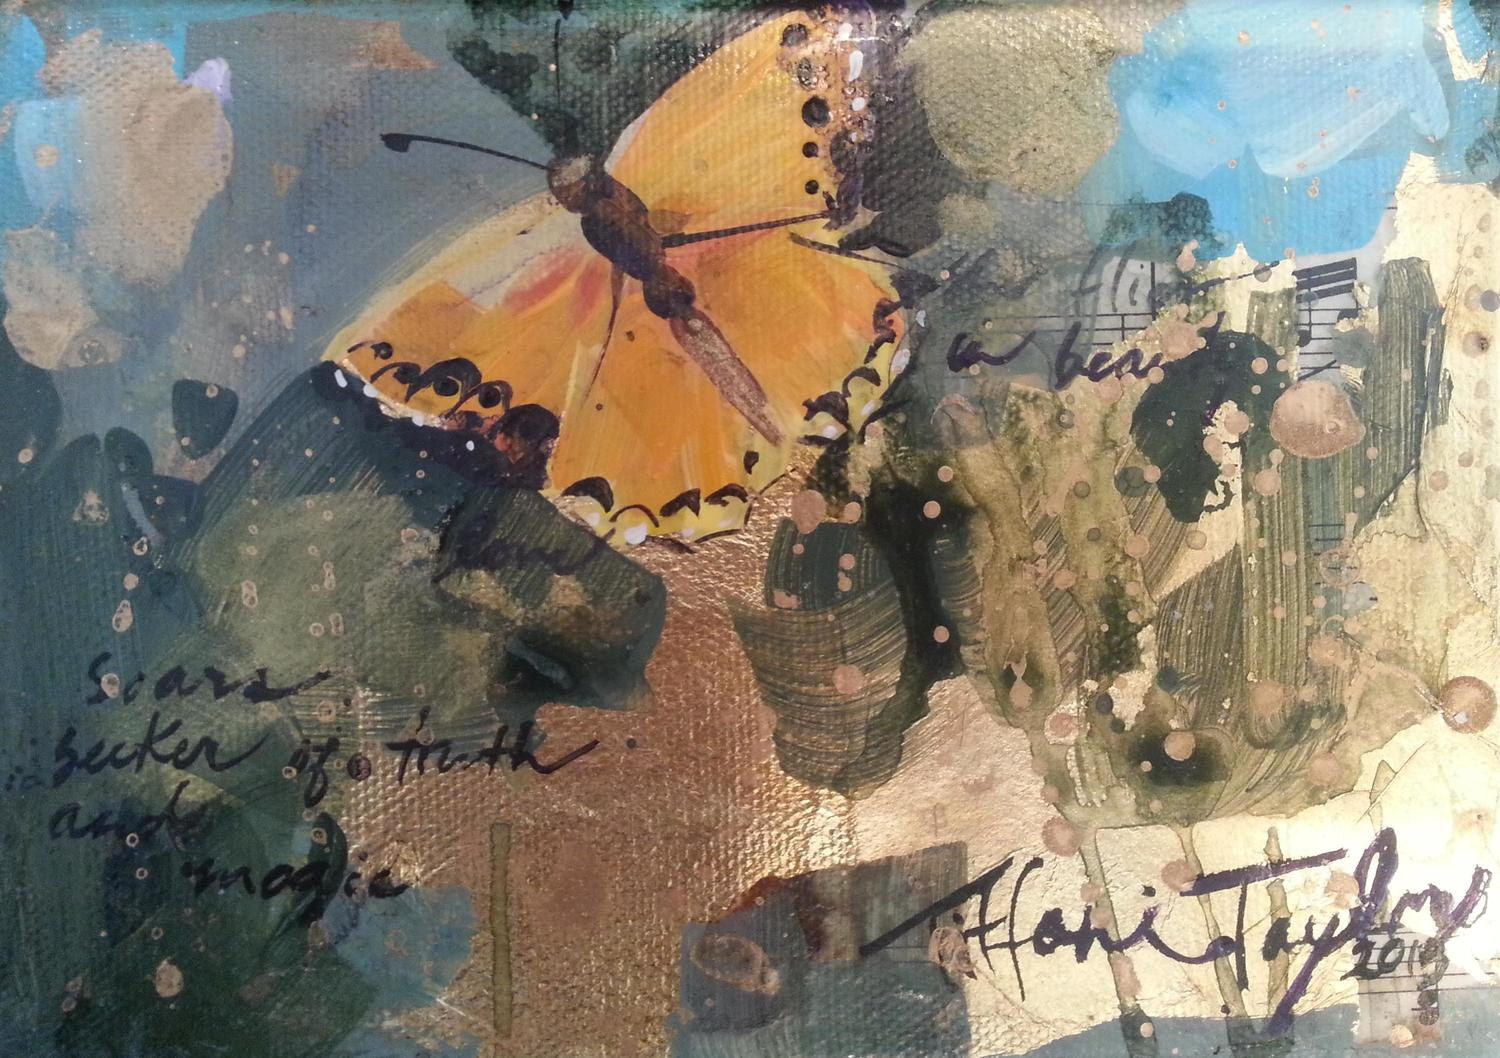 Butterfly: In beauty she soars, seeker of truth and magic…